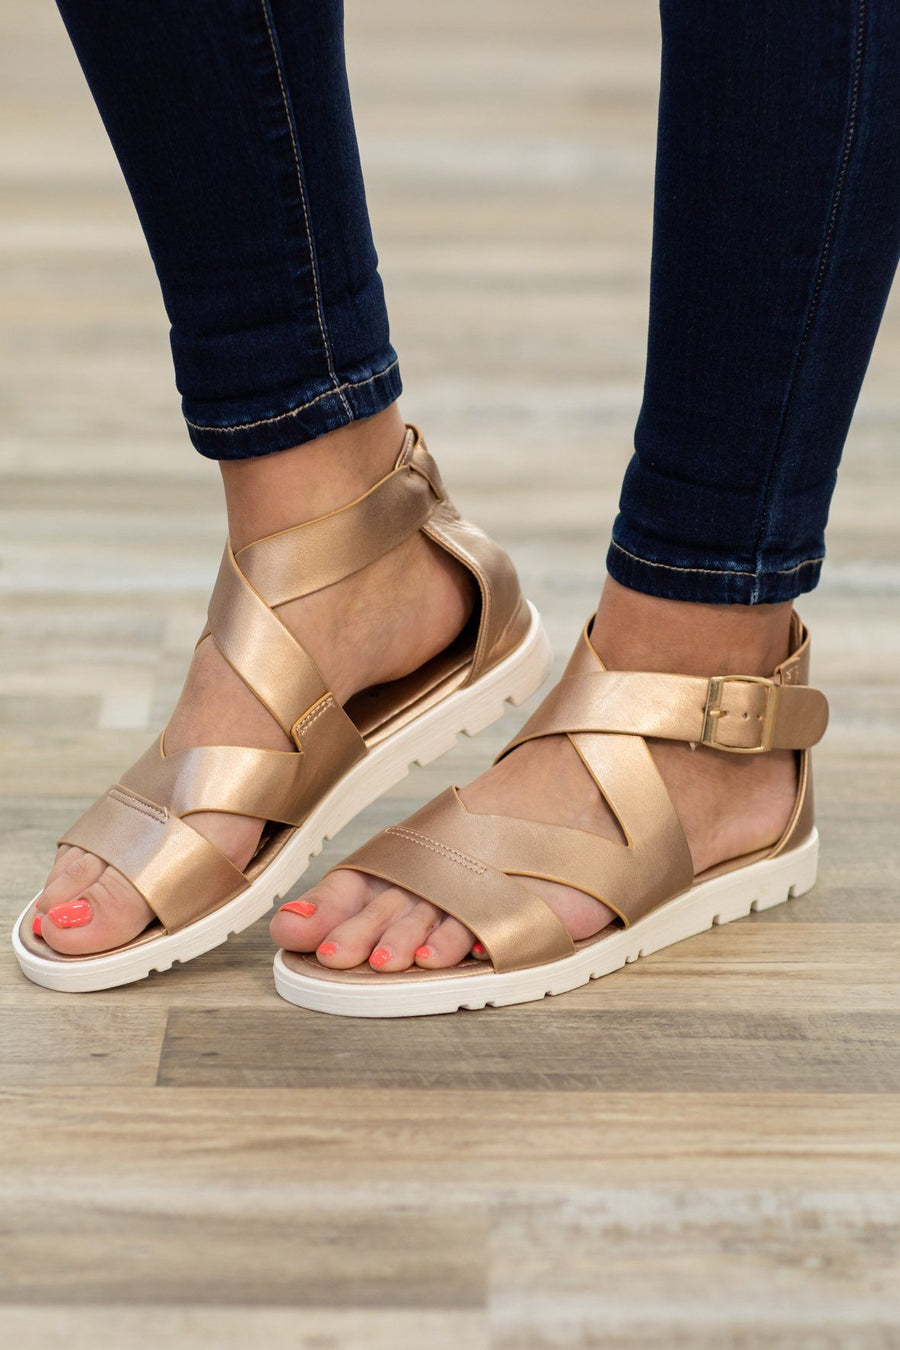 4090e5f63 Always a Favorite Strap Sandal in Rose Gold